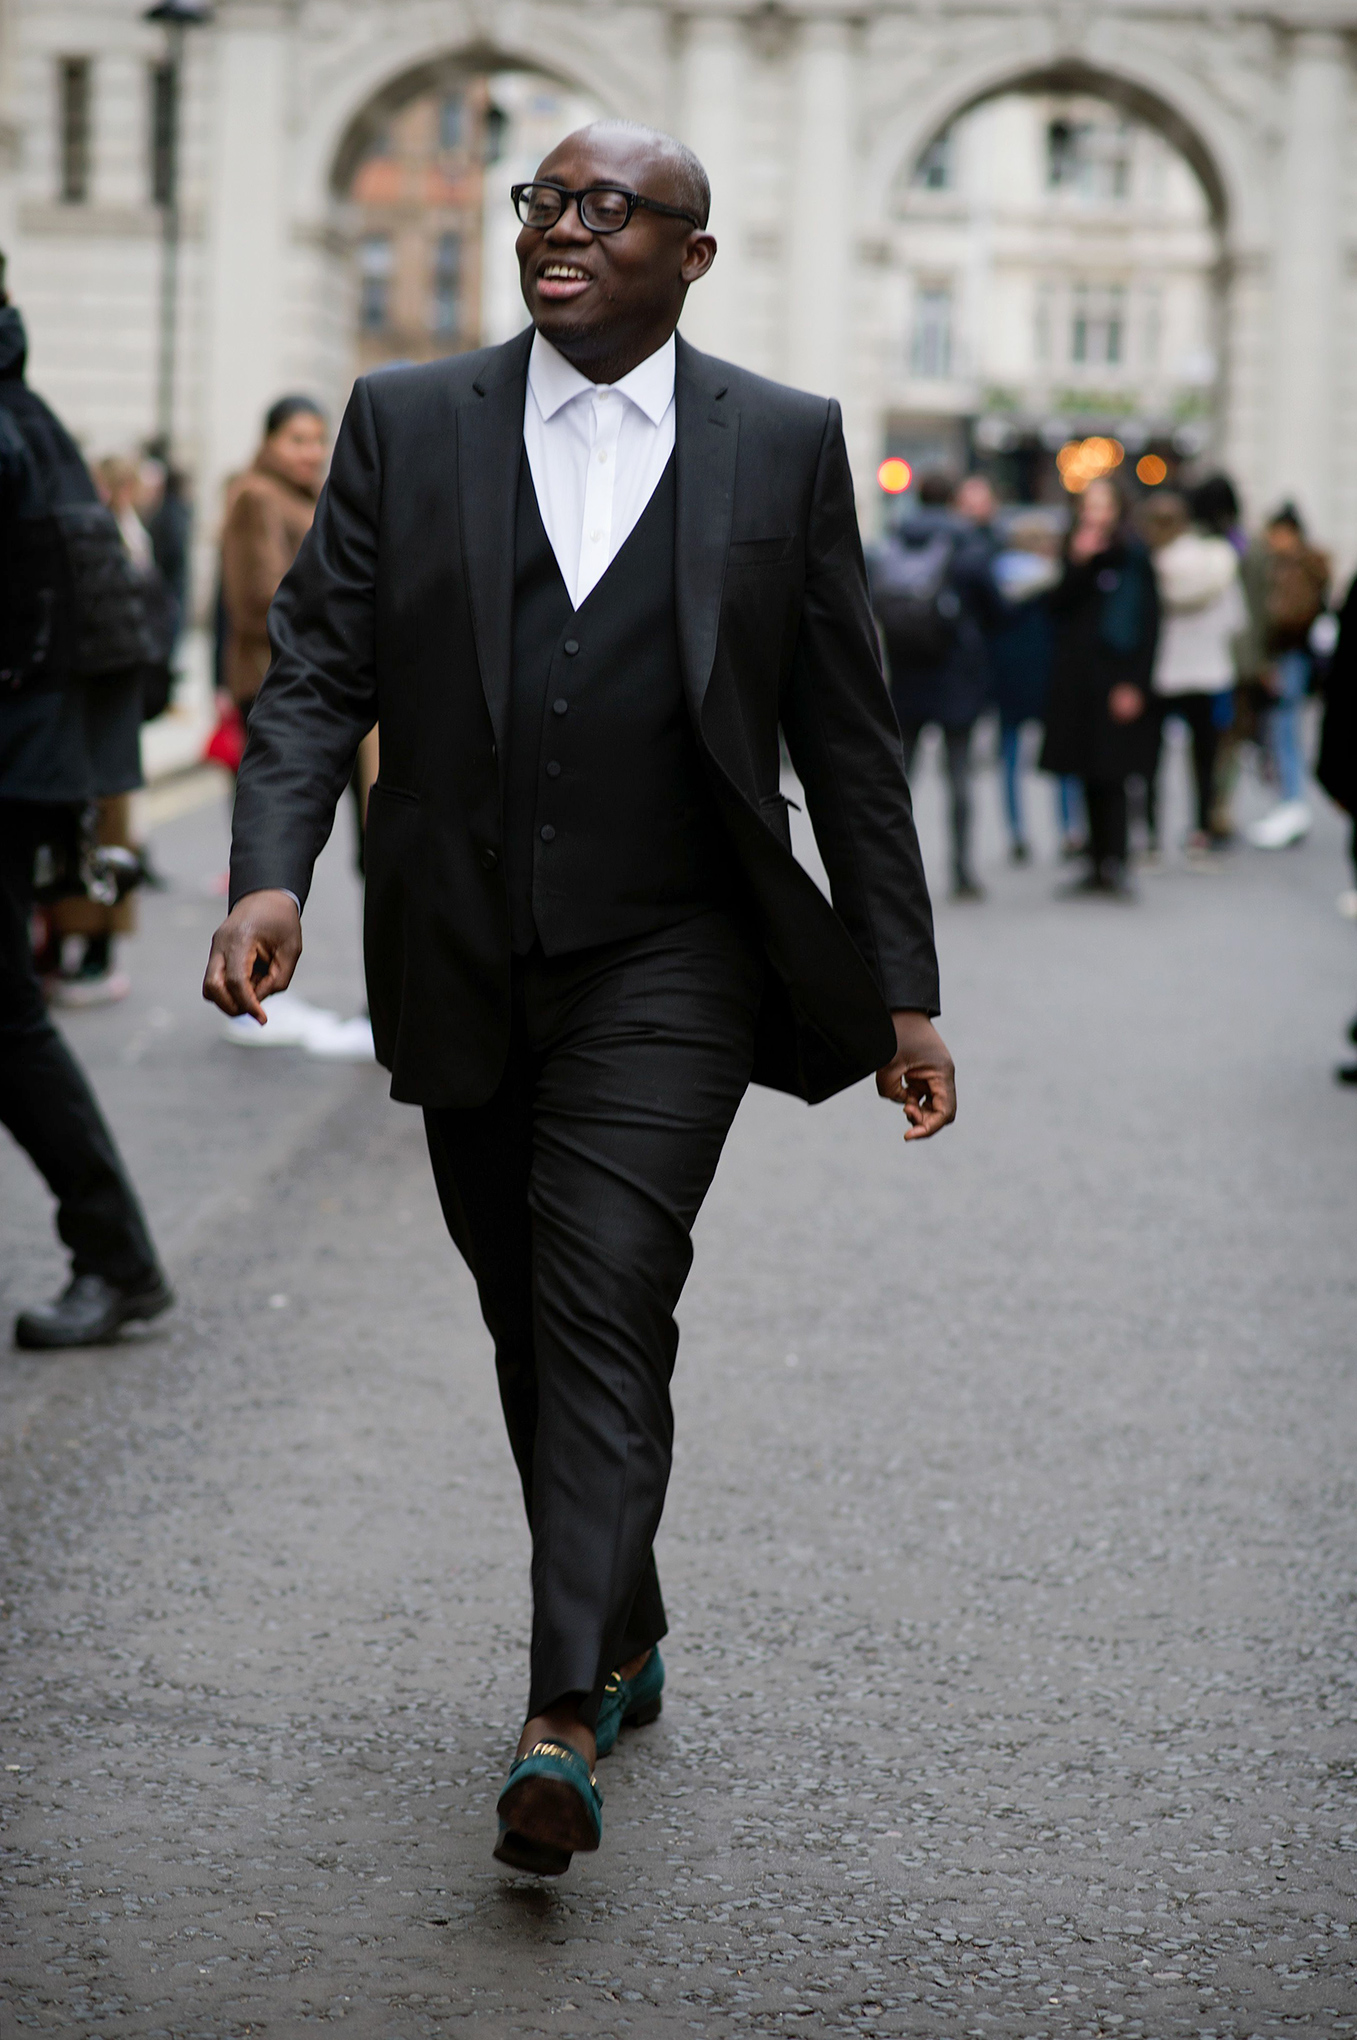 Enninful at London Fashion Week on Feb. 16, 2019.